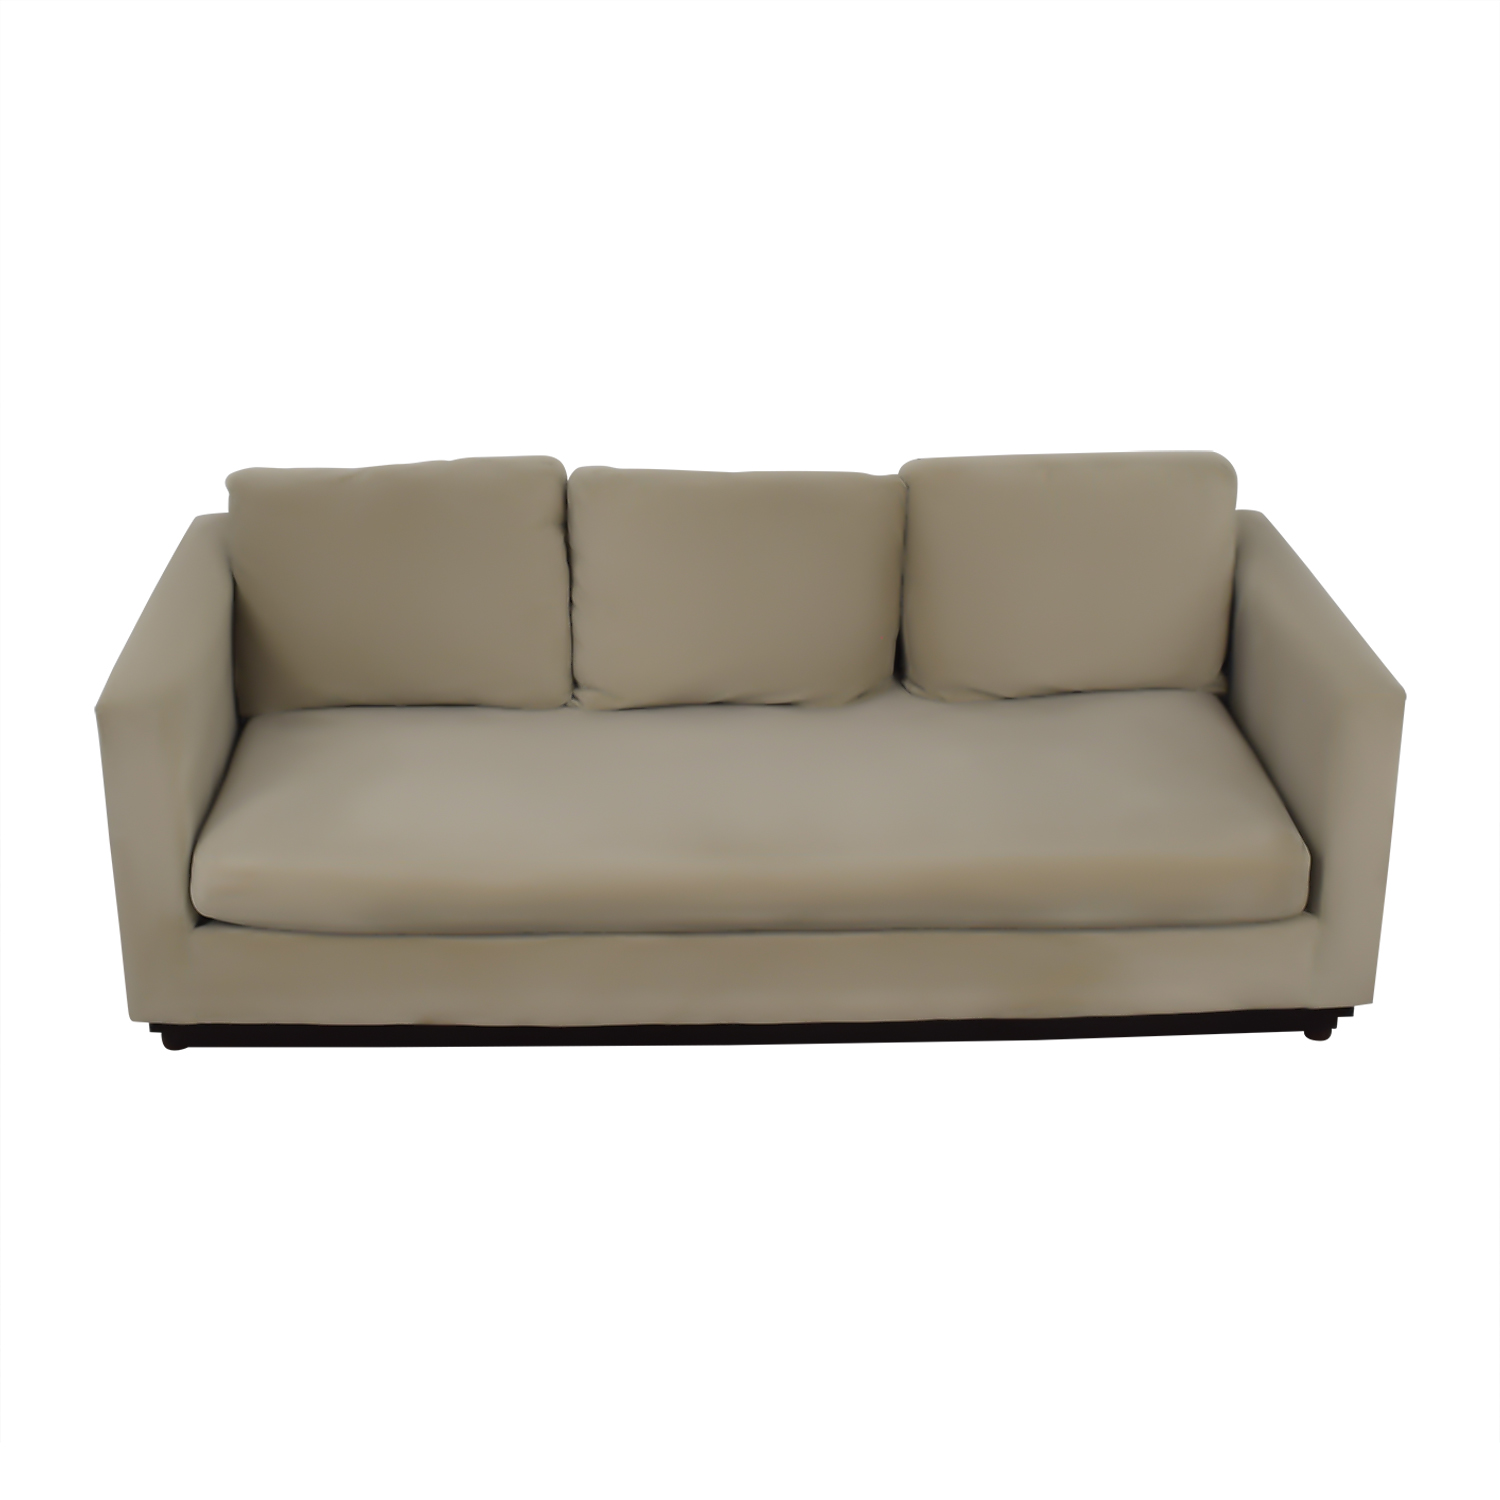 West Elm West Elm Tan Single Cushion Couch nj